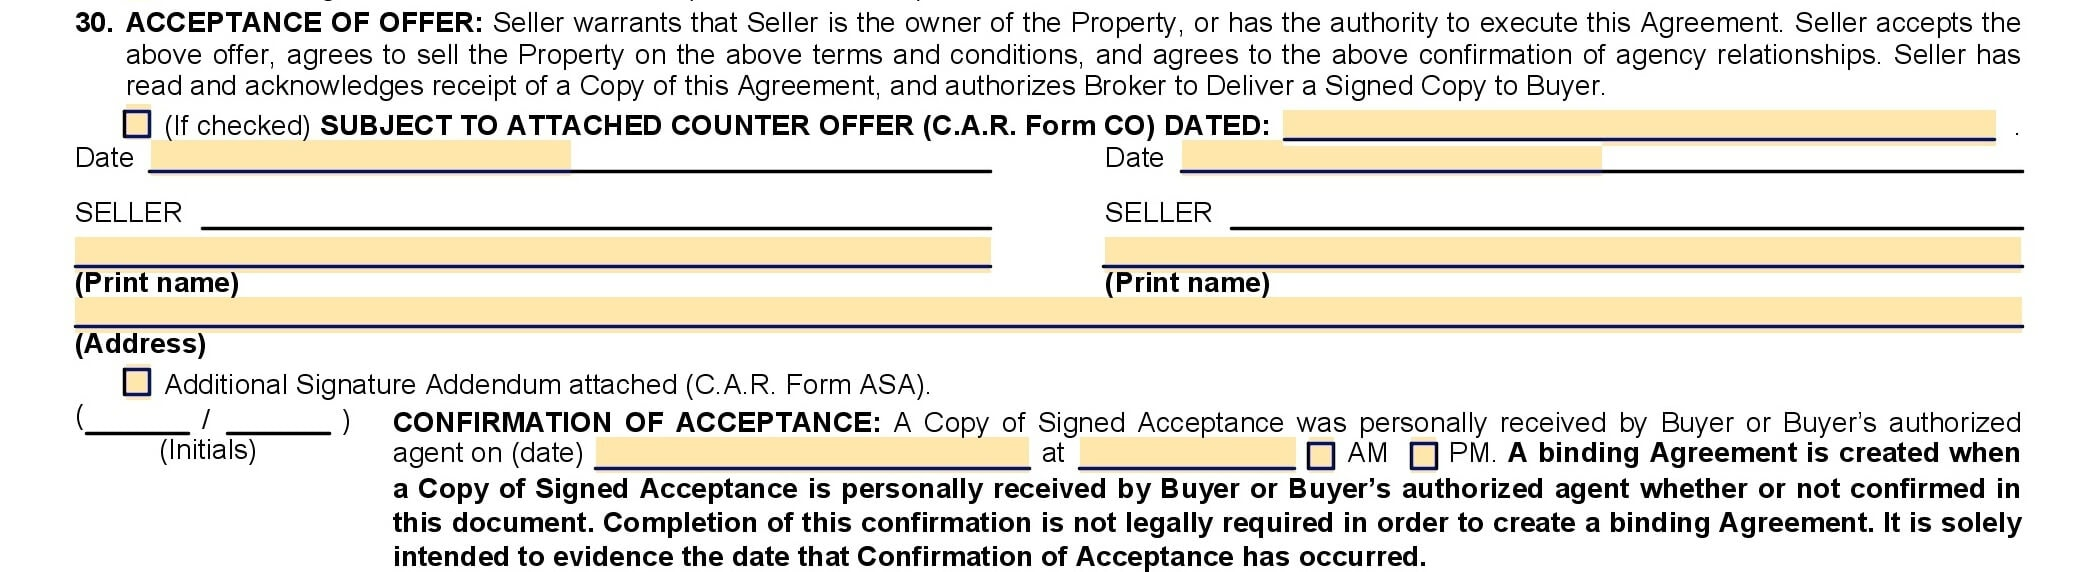 CAR purchase agreement